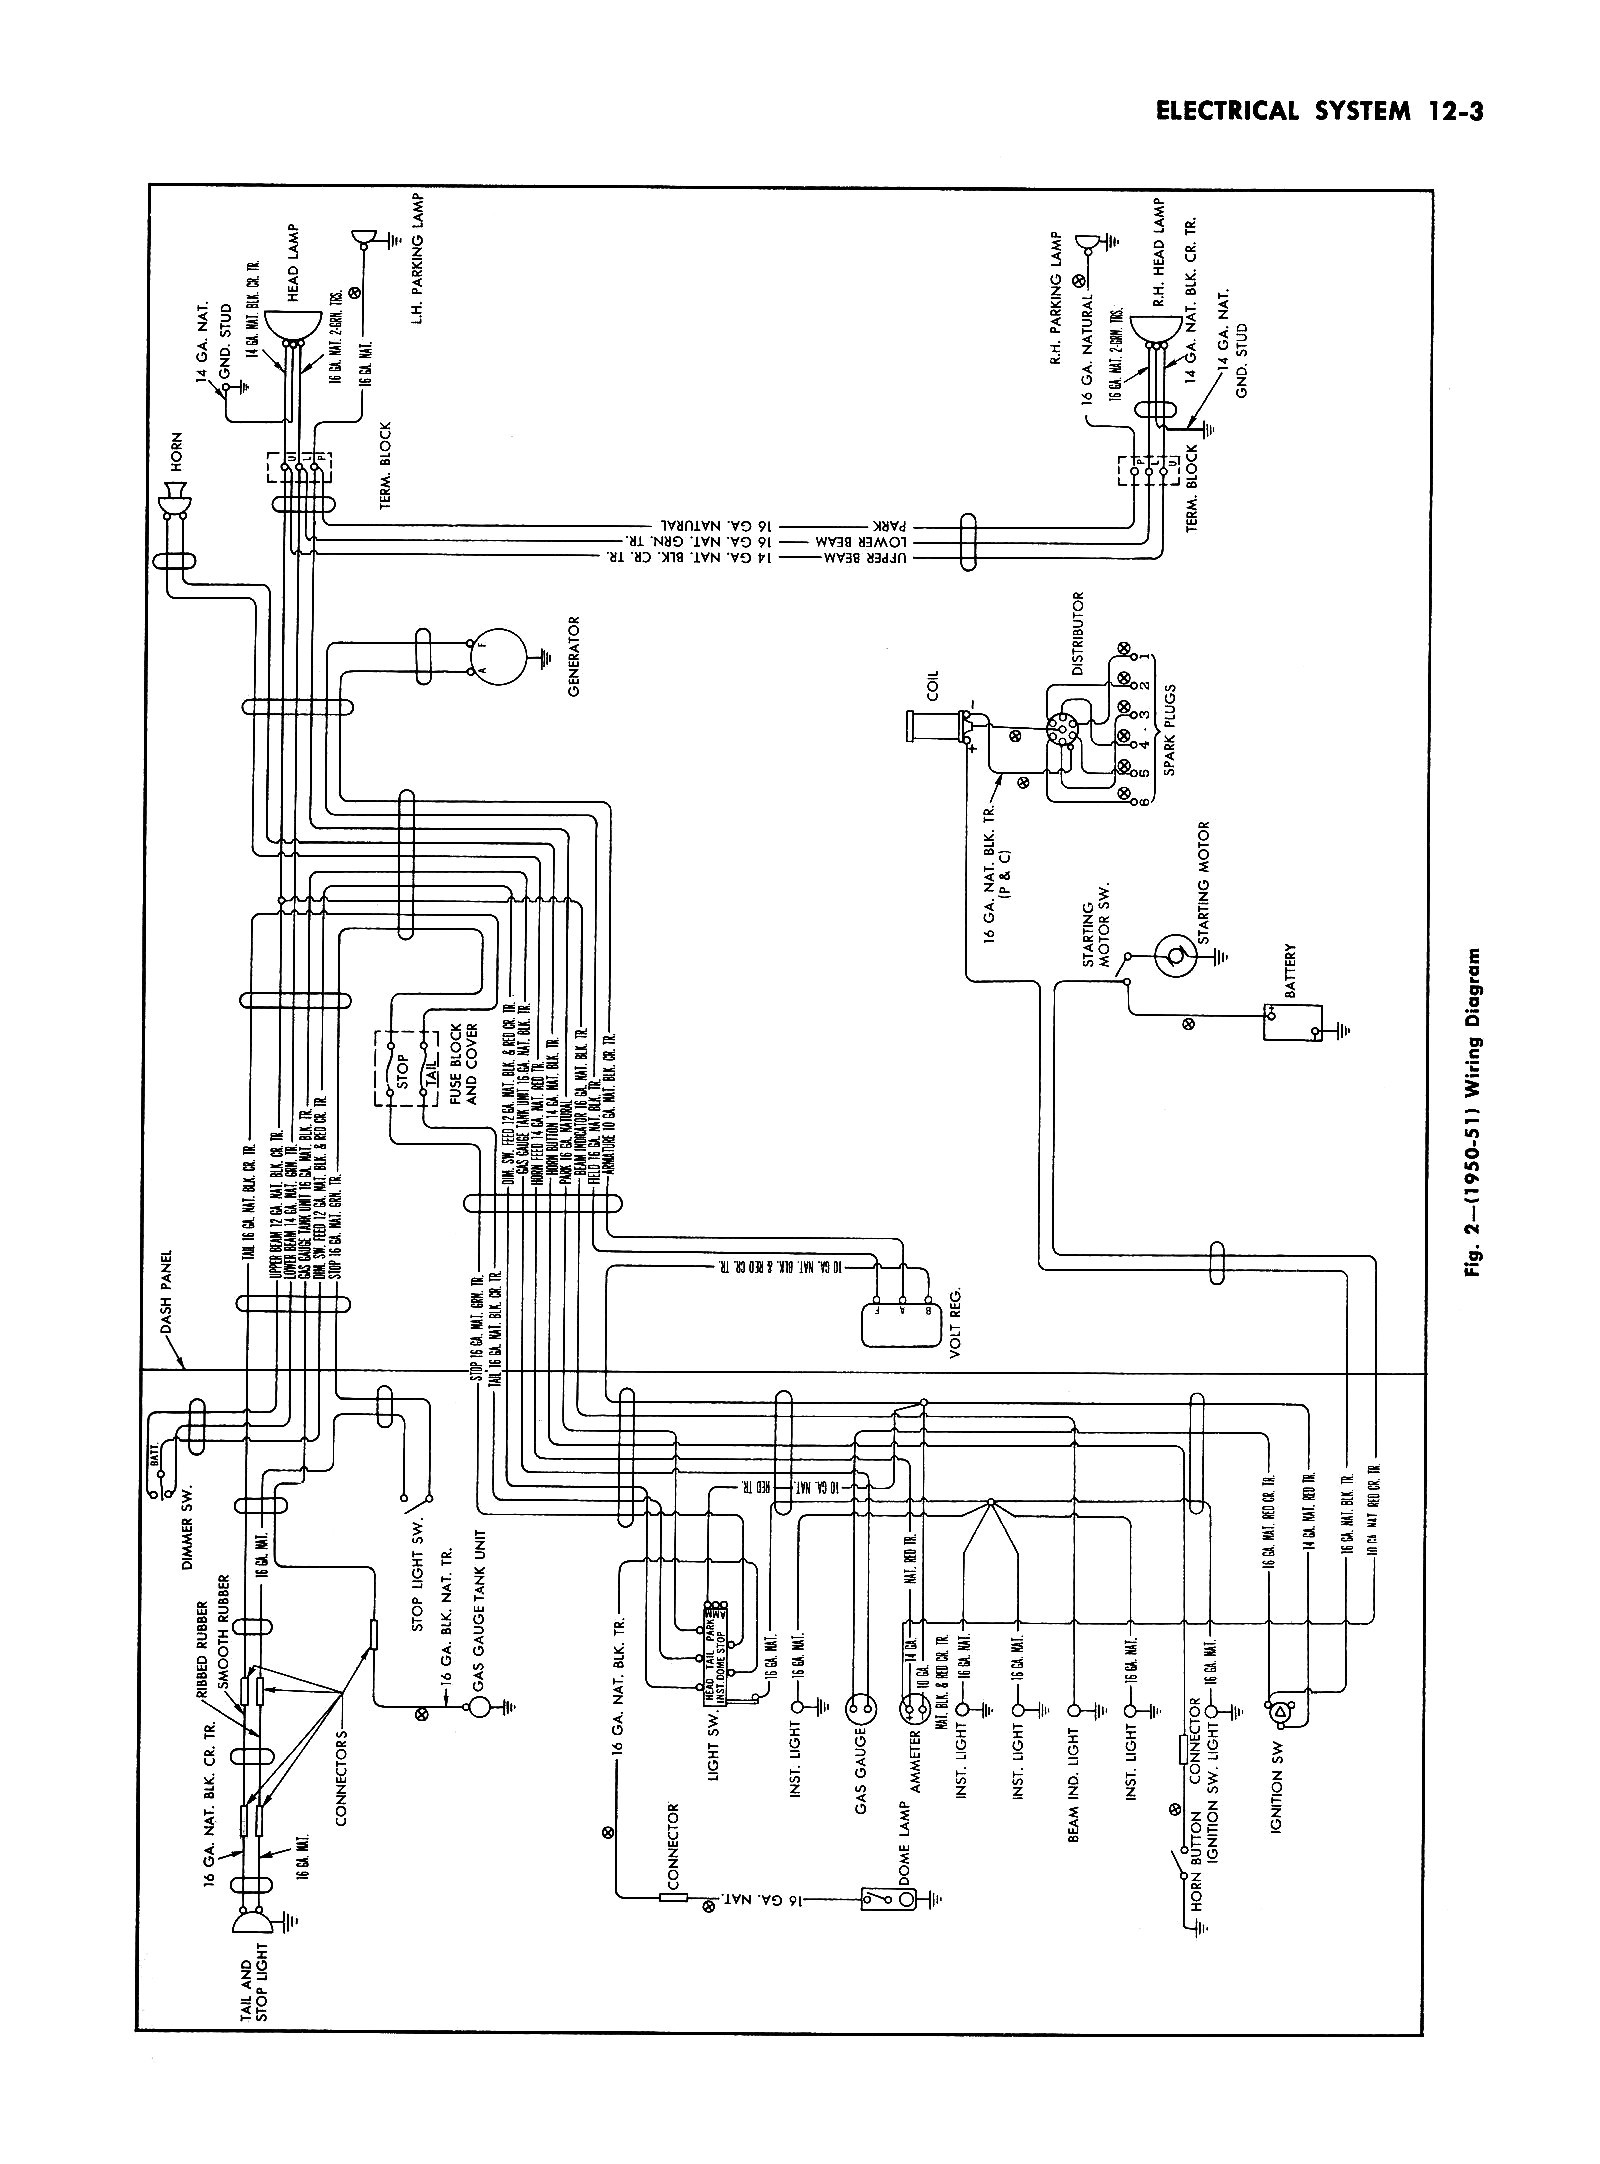 1951 Chevy Deluxe Wiring Diagram Anything Diagrams Lowrider Wire Center U2022 Rh Rkstartup Co Hardtop